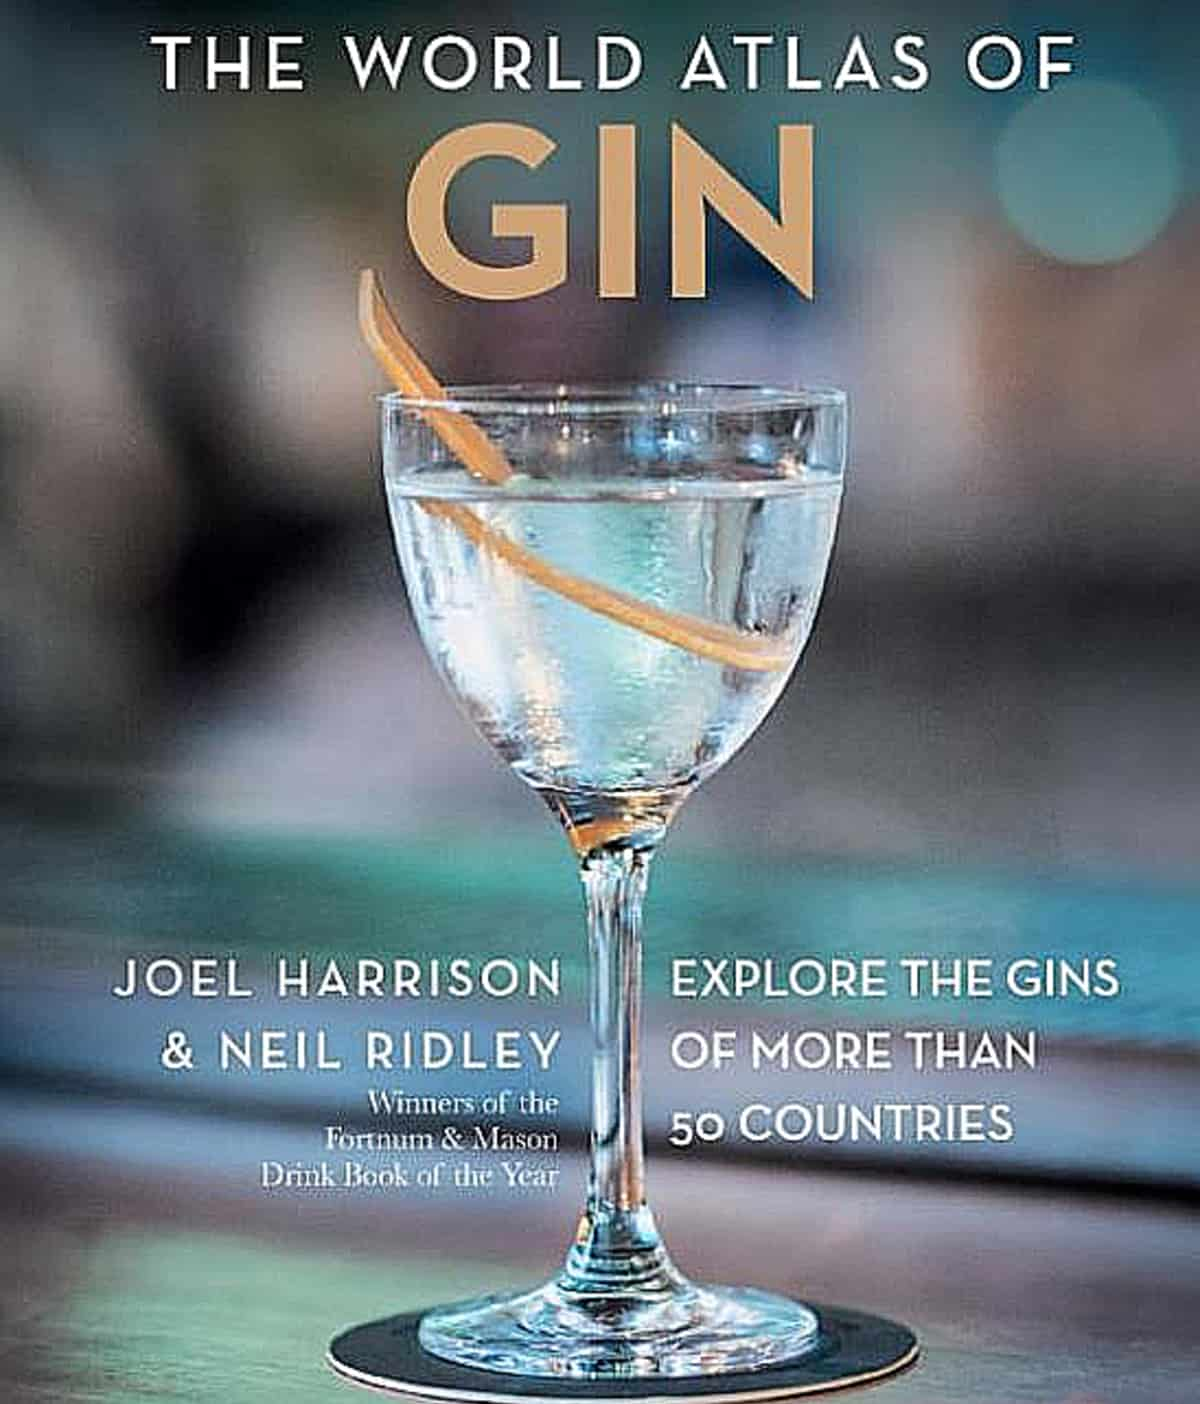 A beautiful book about one of the most aromatic of the spirits, gin. Pic credit: Octopus Books.